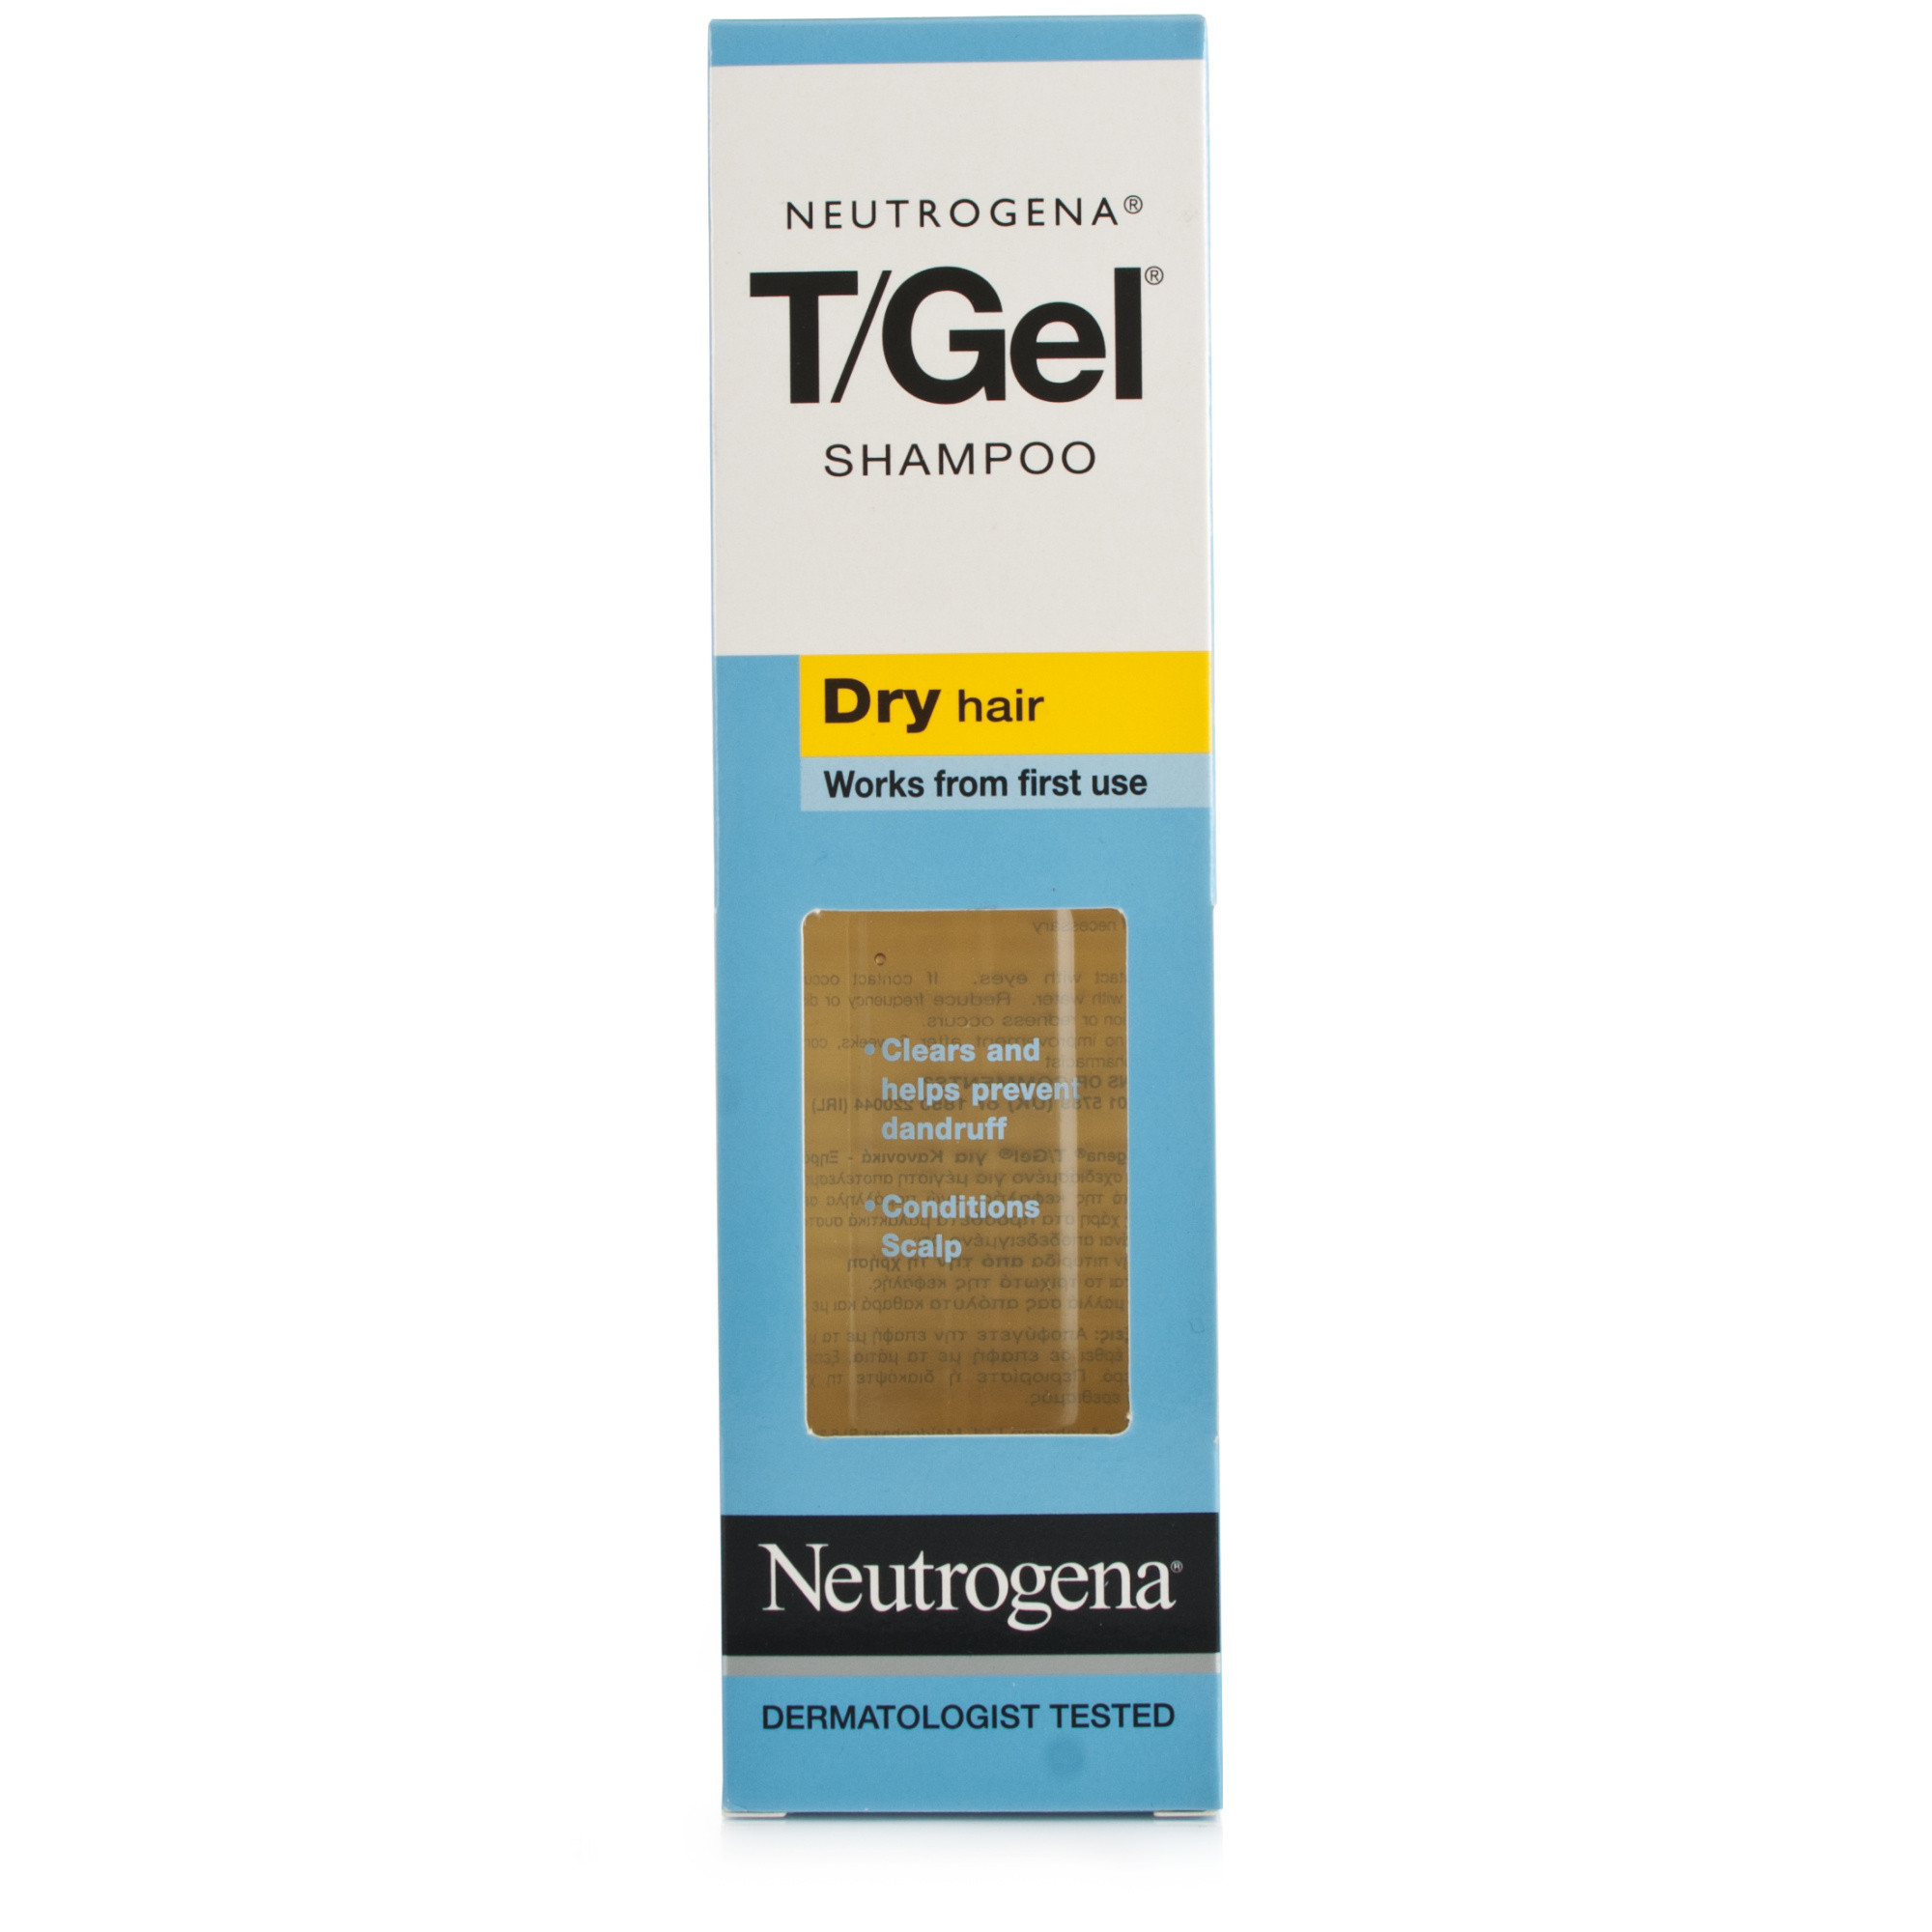 Neutrogena TGel Dry Hair Shampoo For Dry Hair